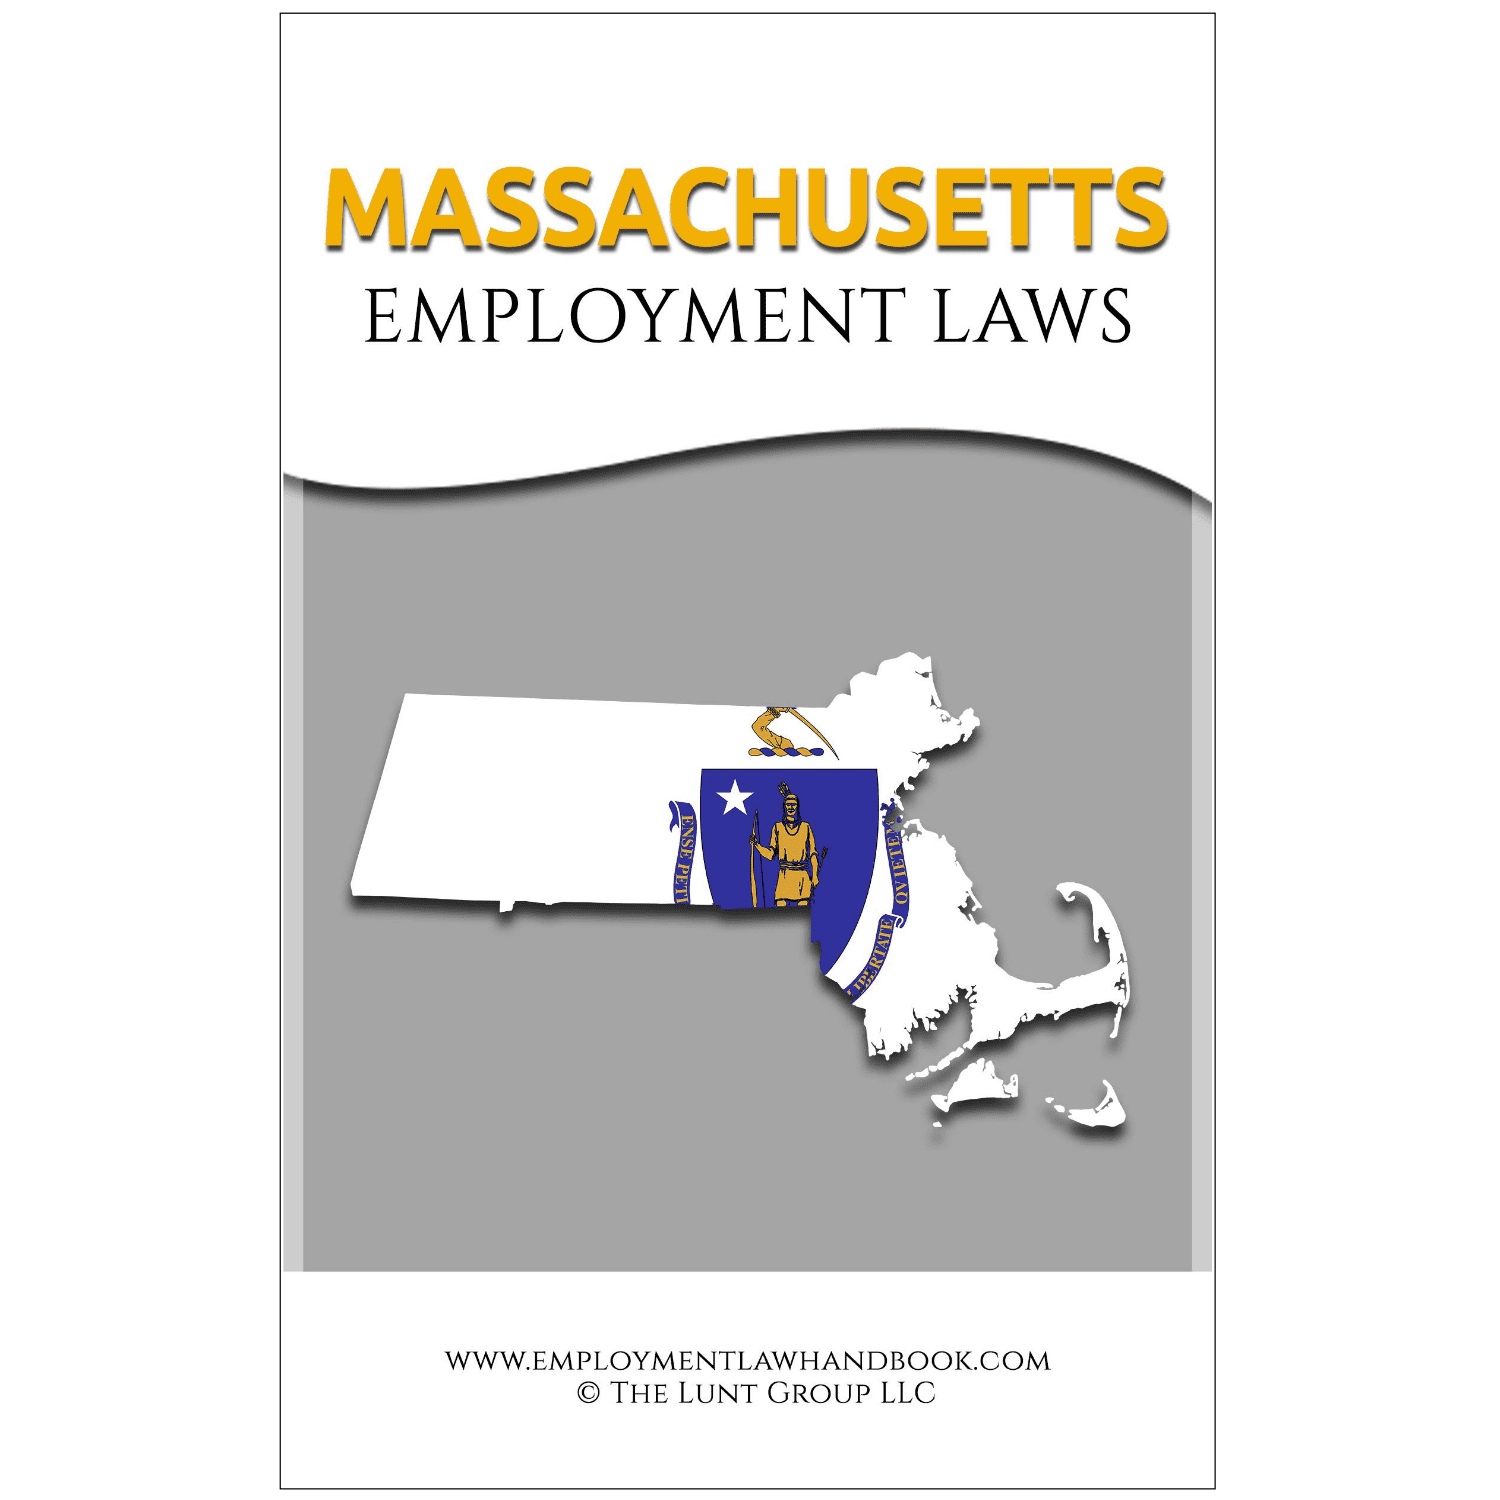 massachusetts Employment Laws_sq